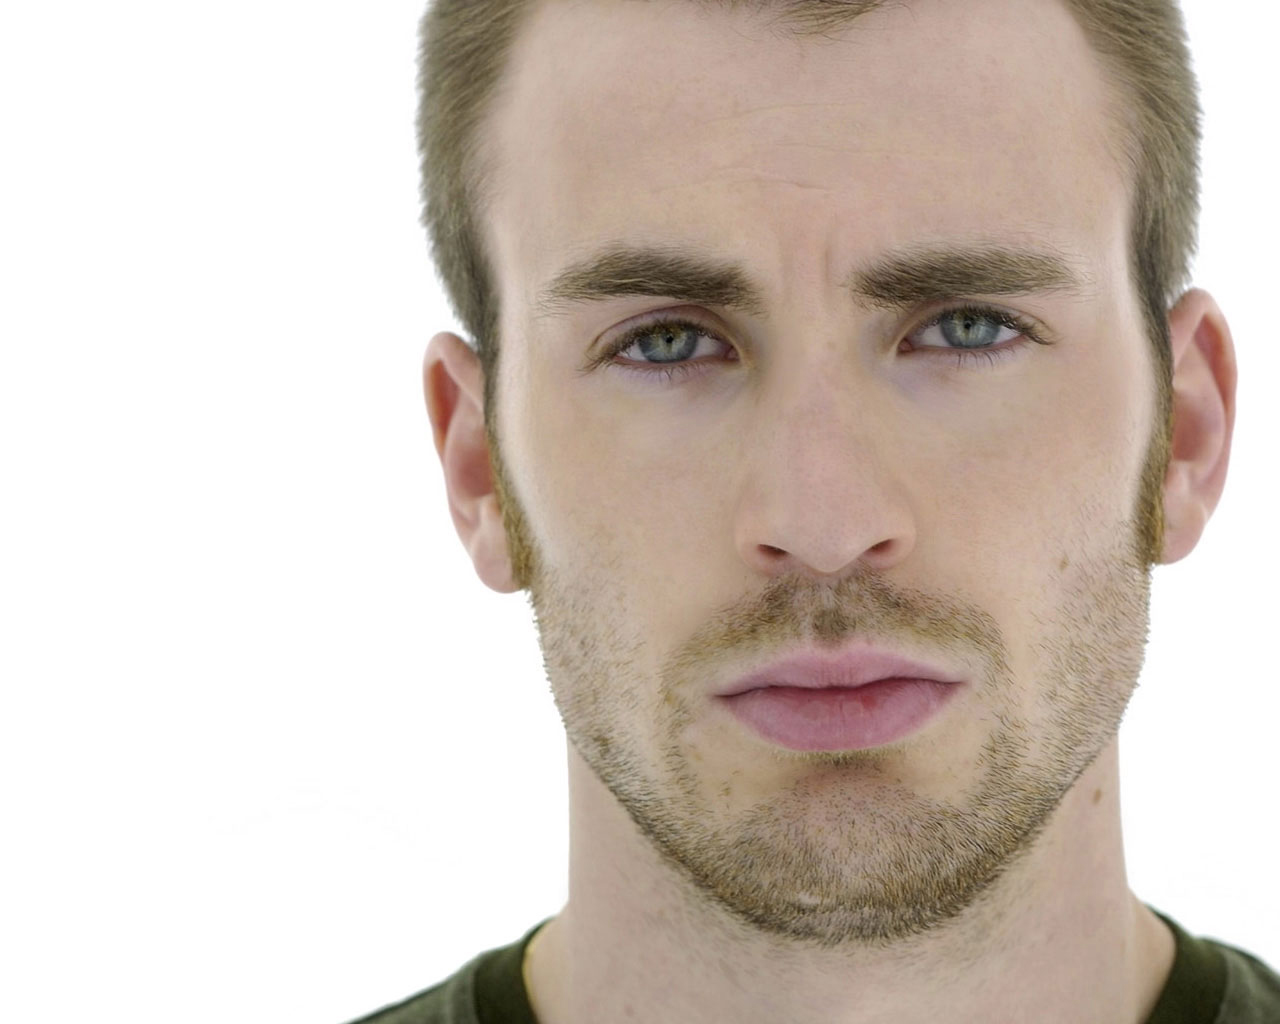 These are just some of my favorite films that Chris Evans, the actor and star of the new film Captain America has been in over ...